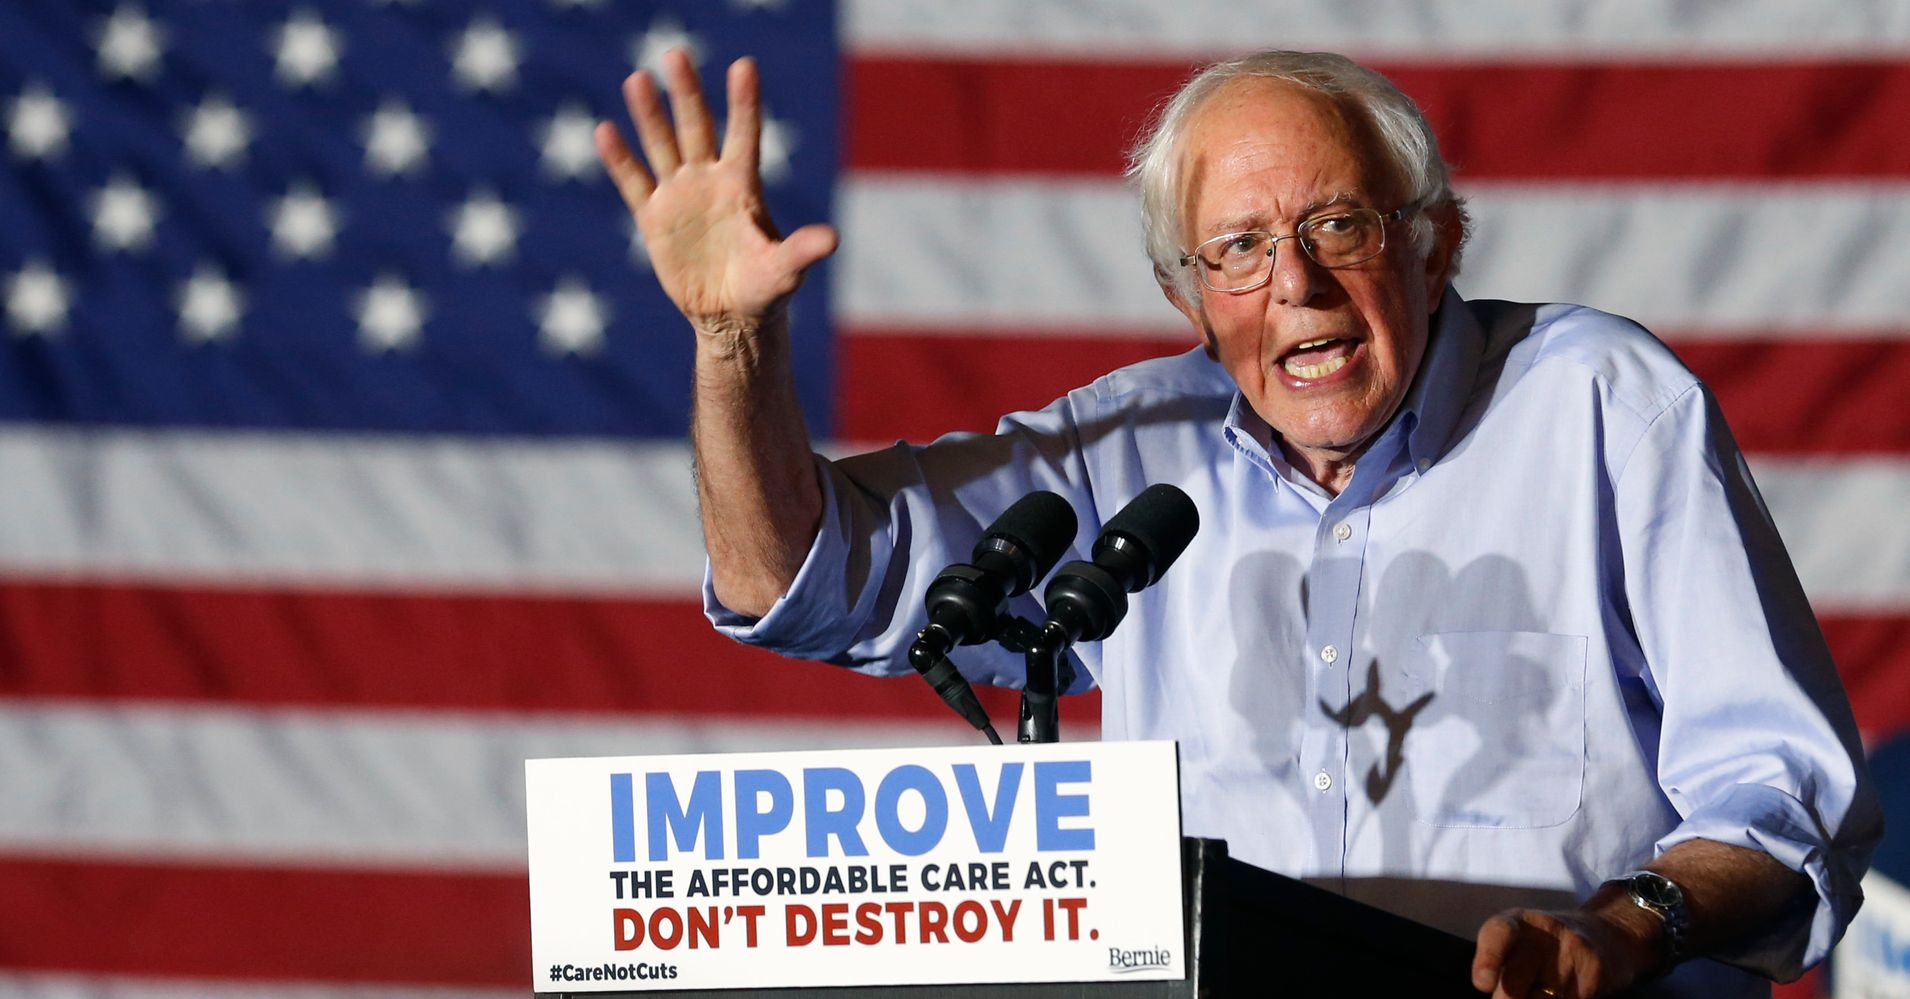 Bernie Sanders To Propose New Rule Requiring Fair Prices For Taxpayer-Funded Drugs